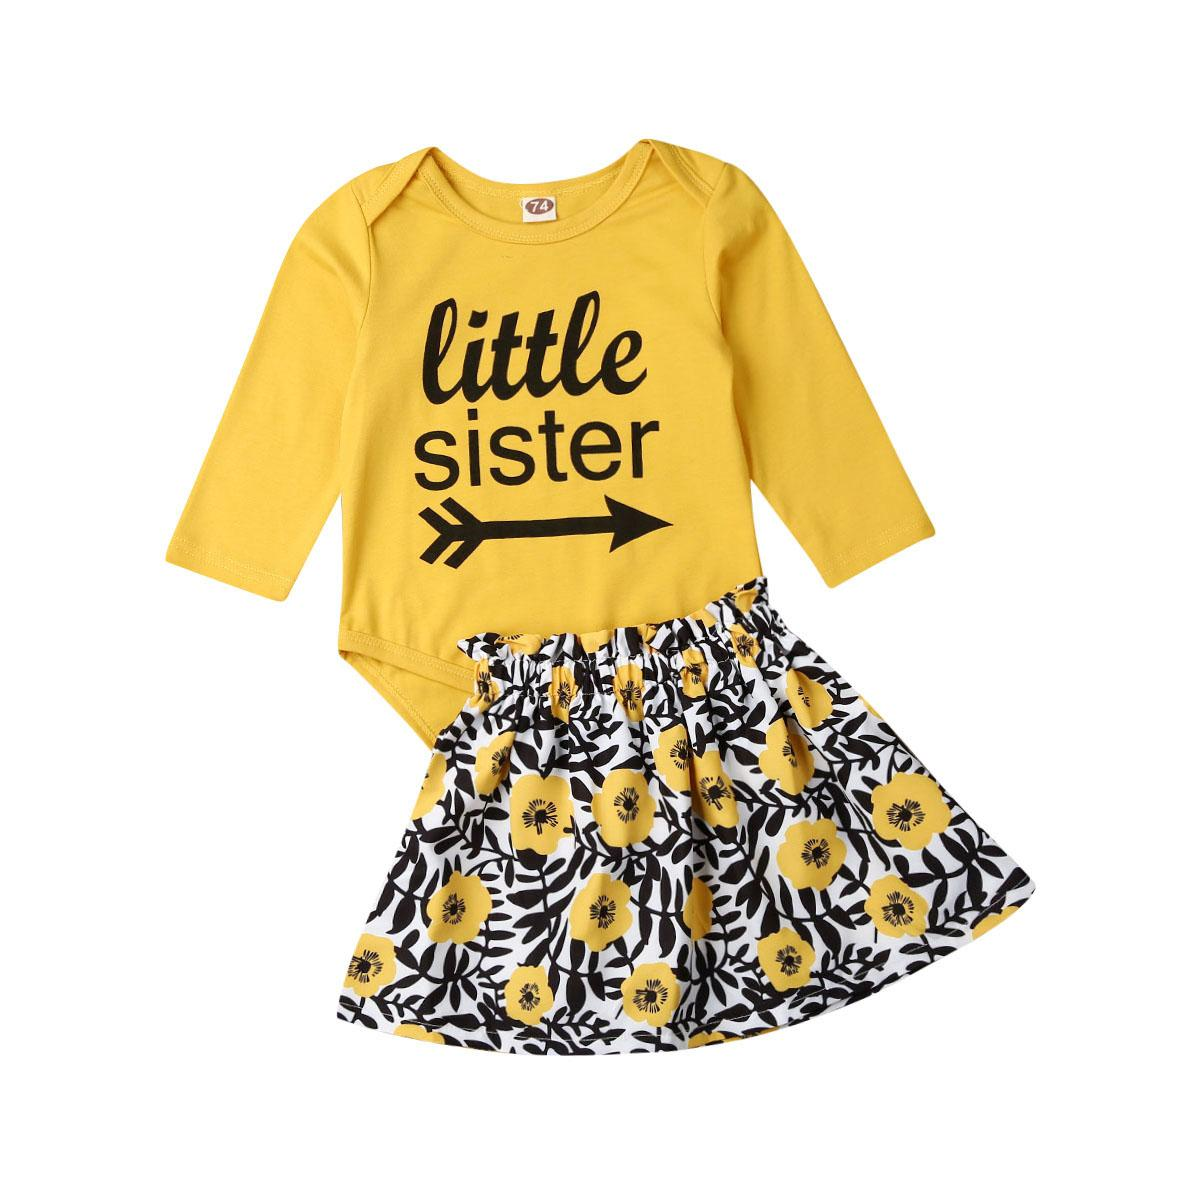 0-24M Newborn Baby Girl Clothes Little Sister Romper Tops Littl Floral Dress Outfits 2Pcs Autumn Baby Clothig Set